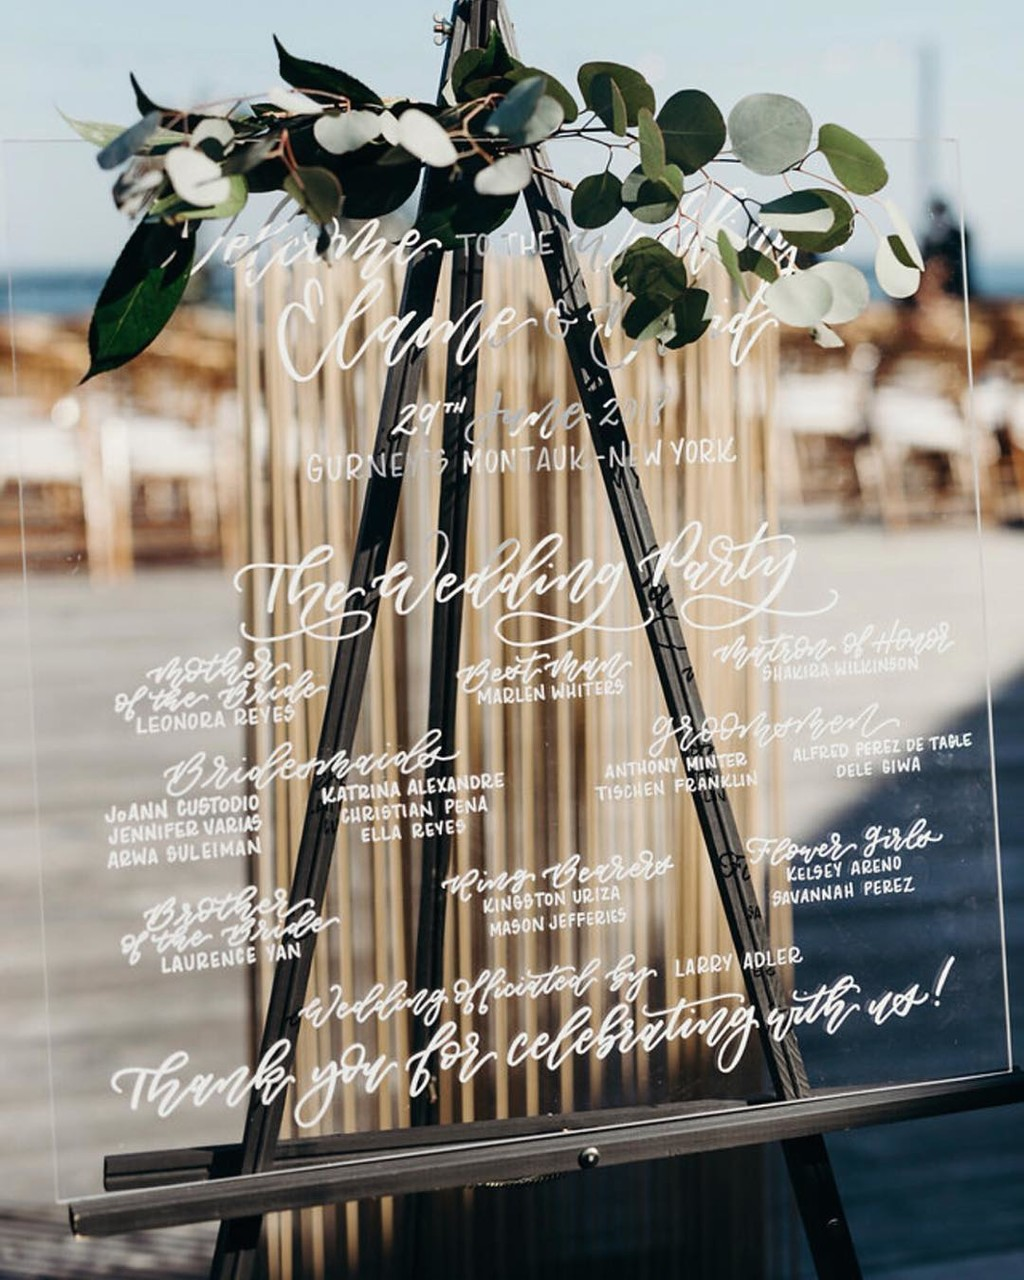 This crisp and clean acrylic ceremony sign is giving me all the beach feels this Sunday morning 👌🏻 Congratulations to Elaine